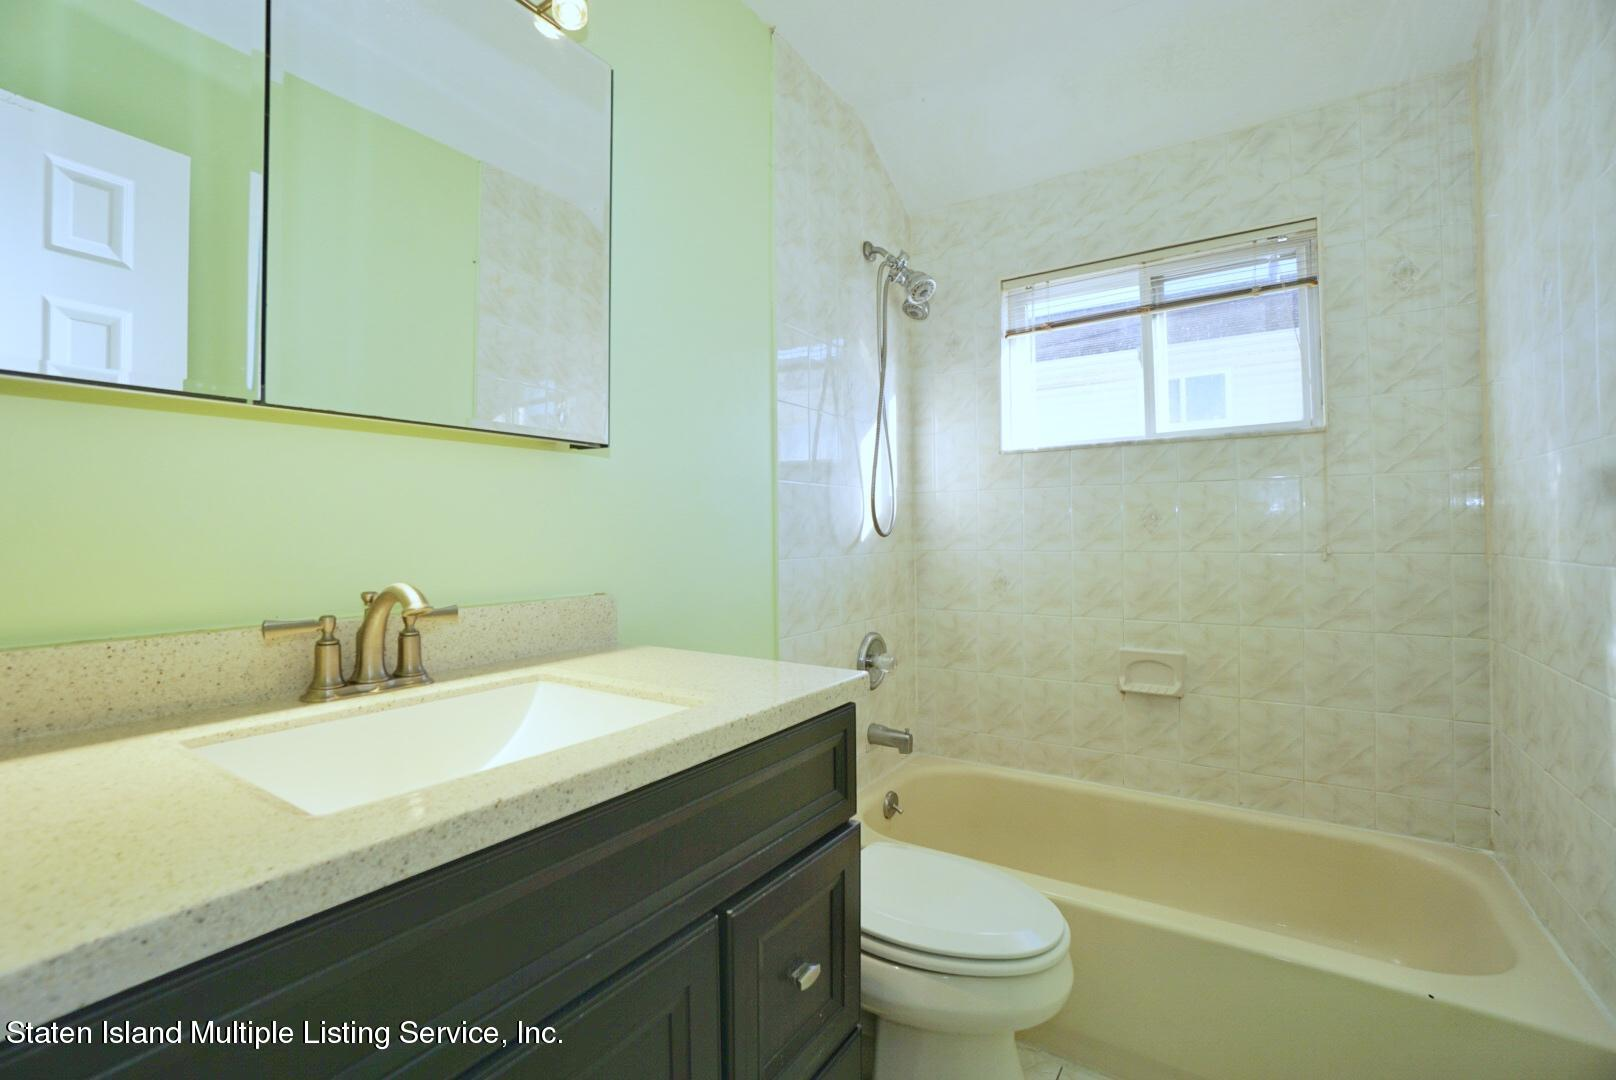 Two Family - Semi-Attached 73 Seguine Loop  Staten Island, NY 10309, MLS-1142582-29